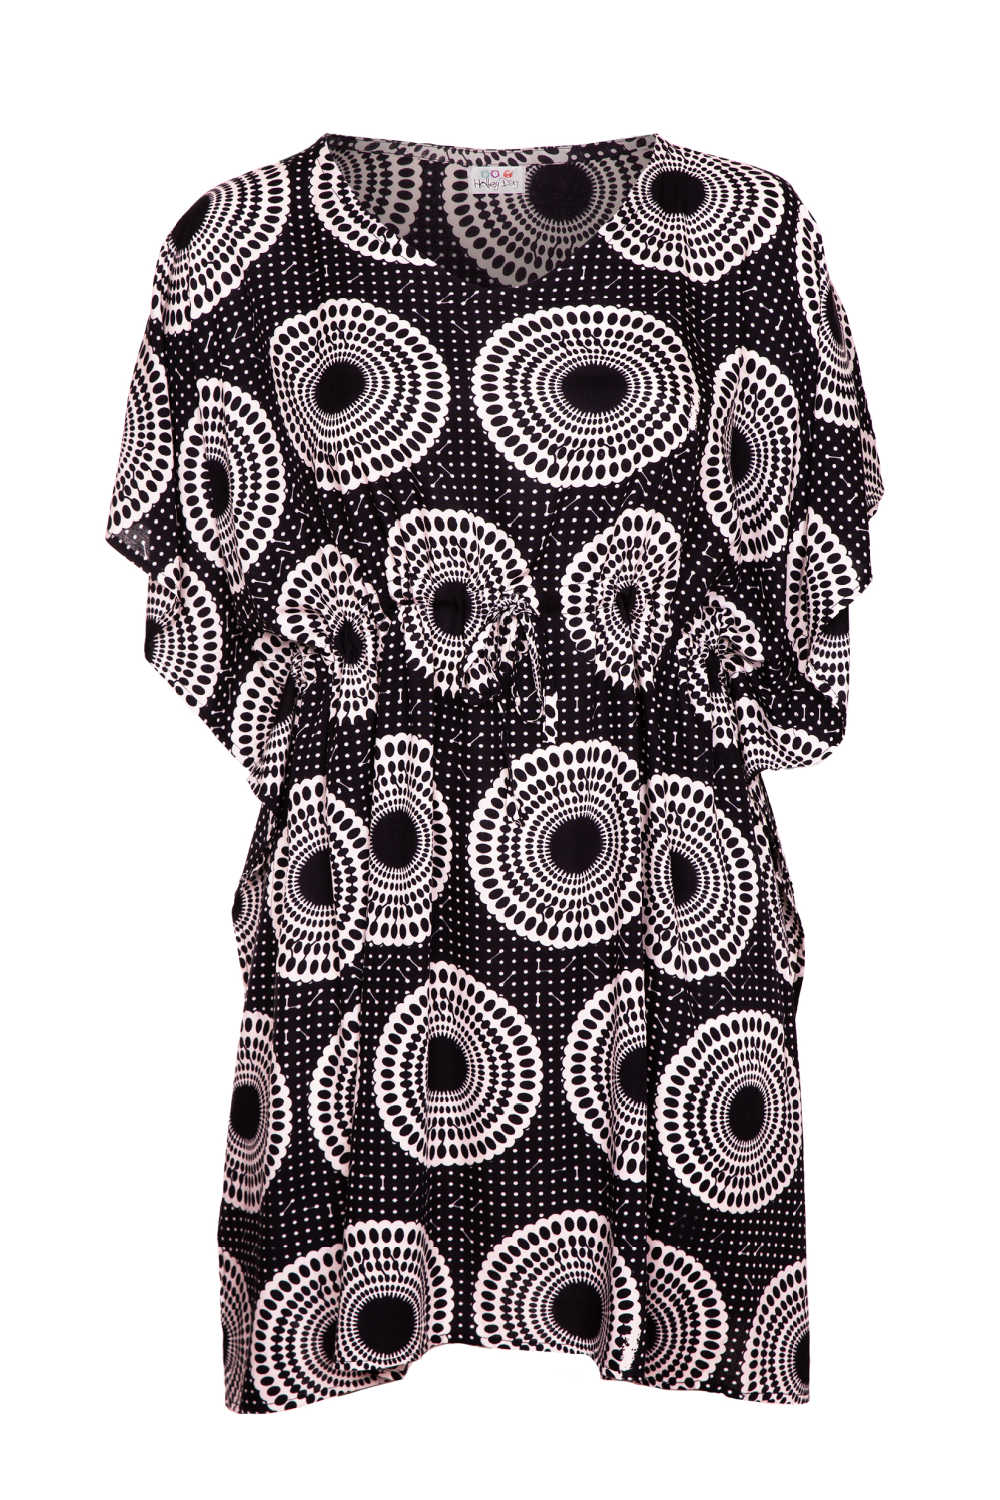 summer-beach-kaftan-dress-black-white-polka-dot